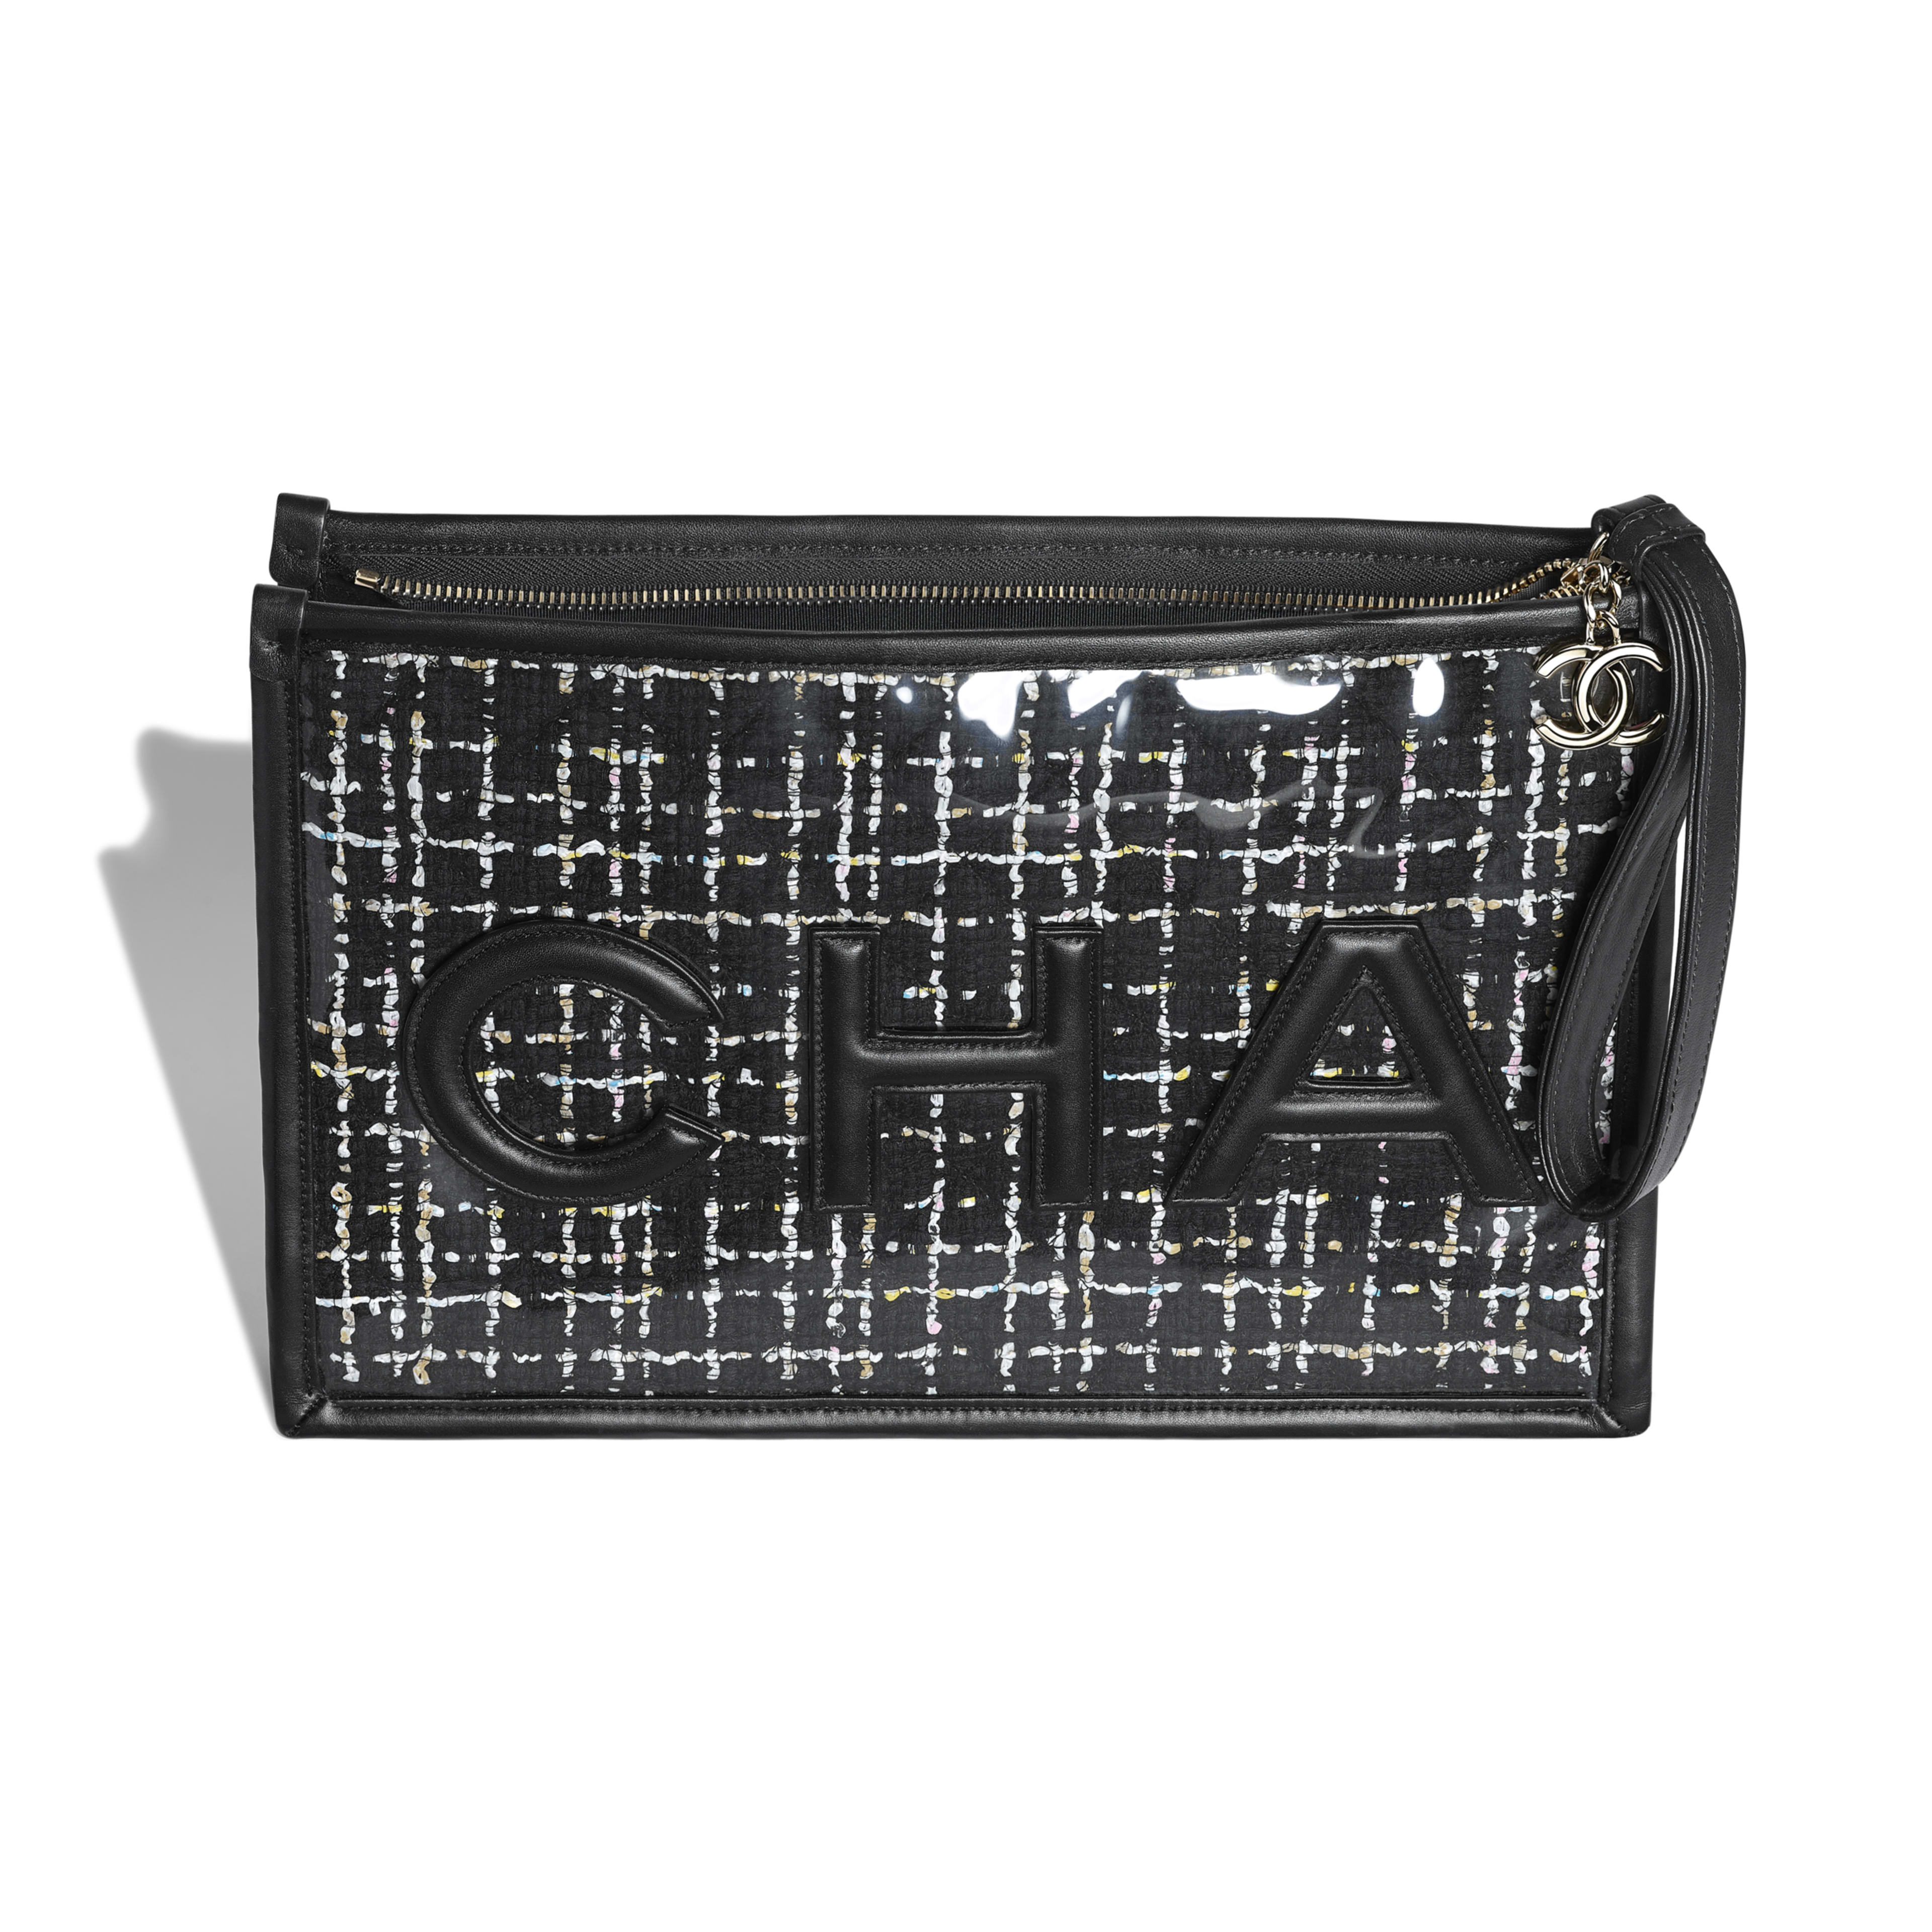 Large Pouch - Black, White, Pink & Yellow - Tweed, PVC, Lambskin & Gold-Tone Metal - Other view - see full sized version